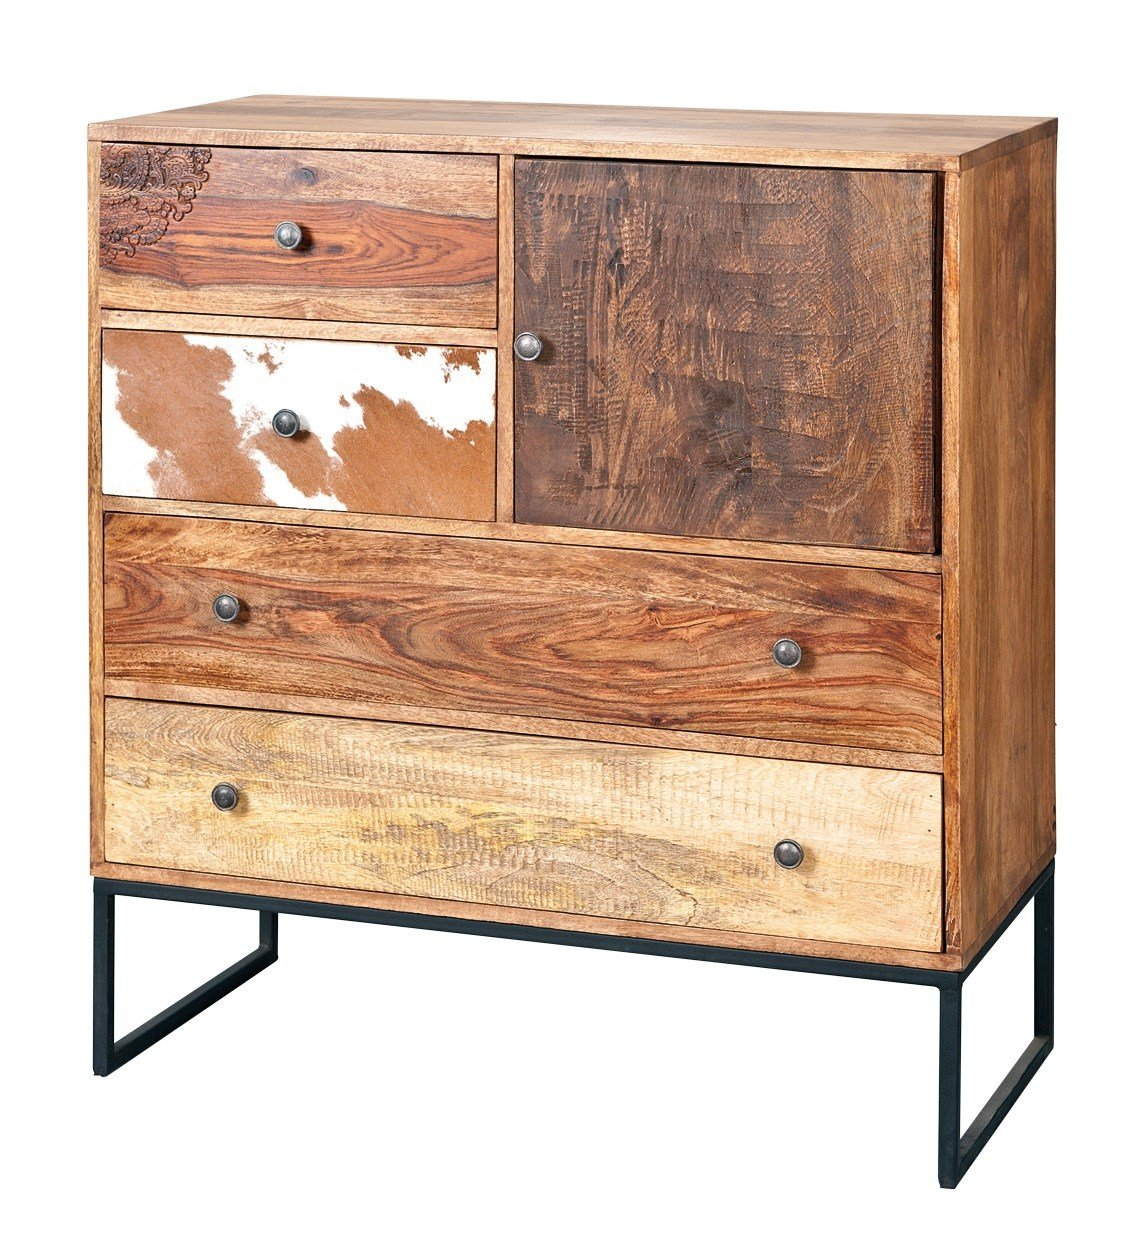 Best Mango Wood Furniture Uv Furniture With Pictures